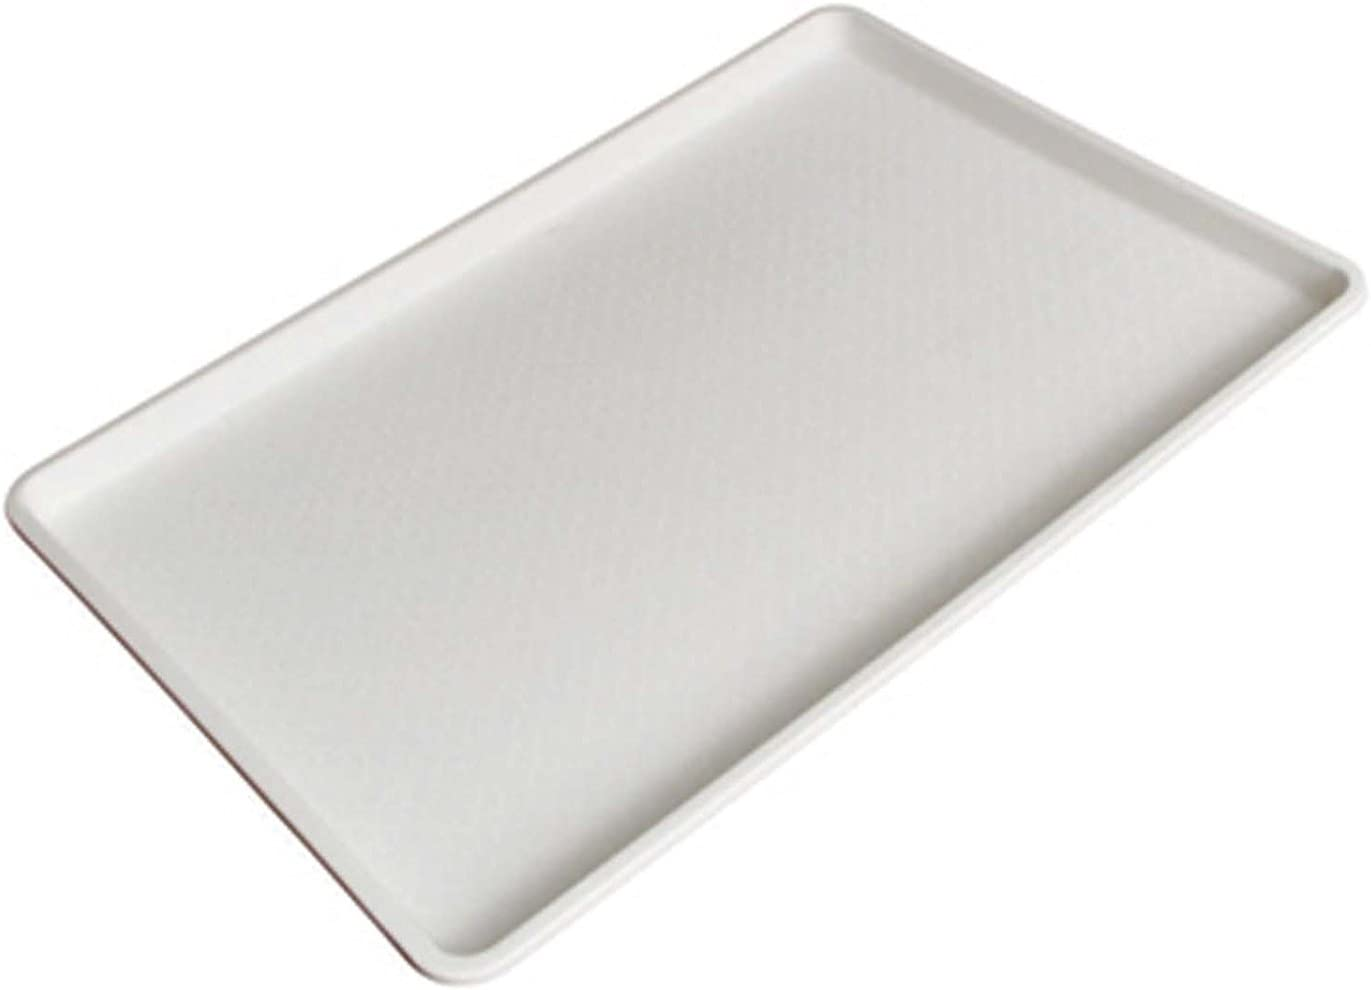 18 x 26 Inch Plastic Tray White (Set of 2)